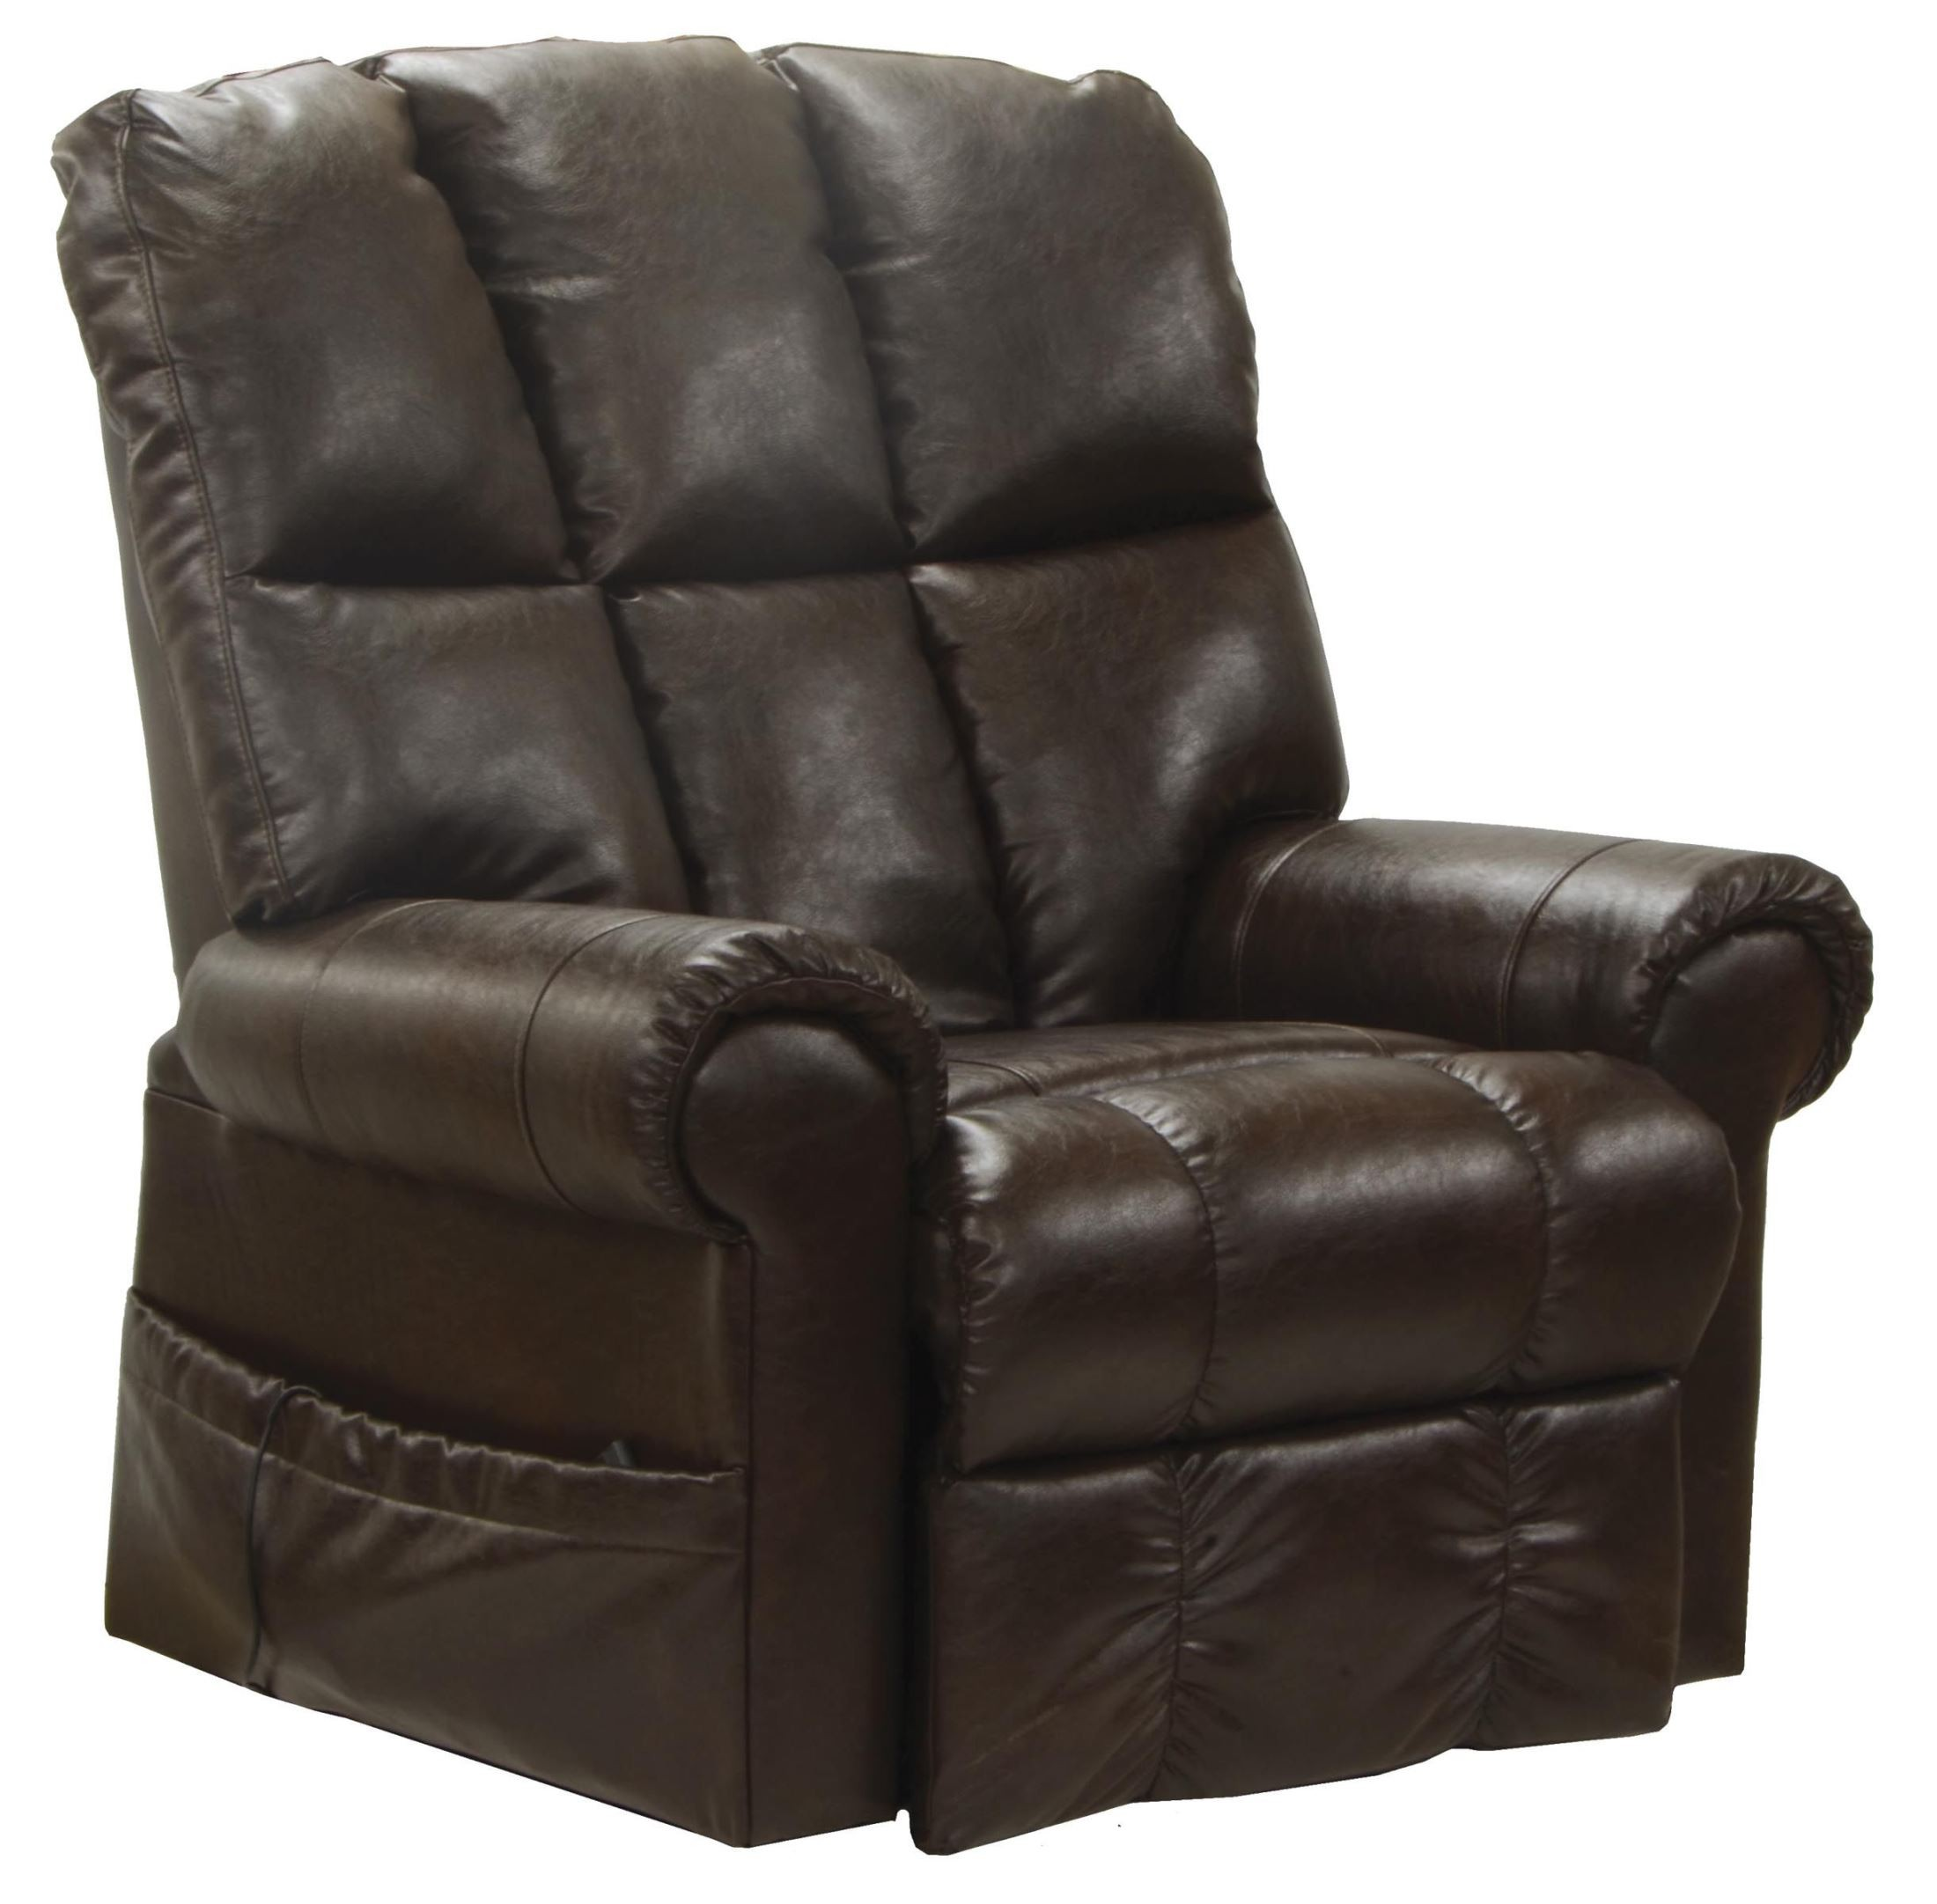 lift chairs walmart lifeguard chair plans stallworth godiva bonded leather power recliner from